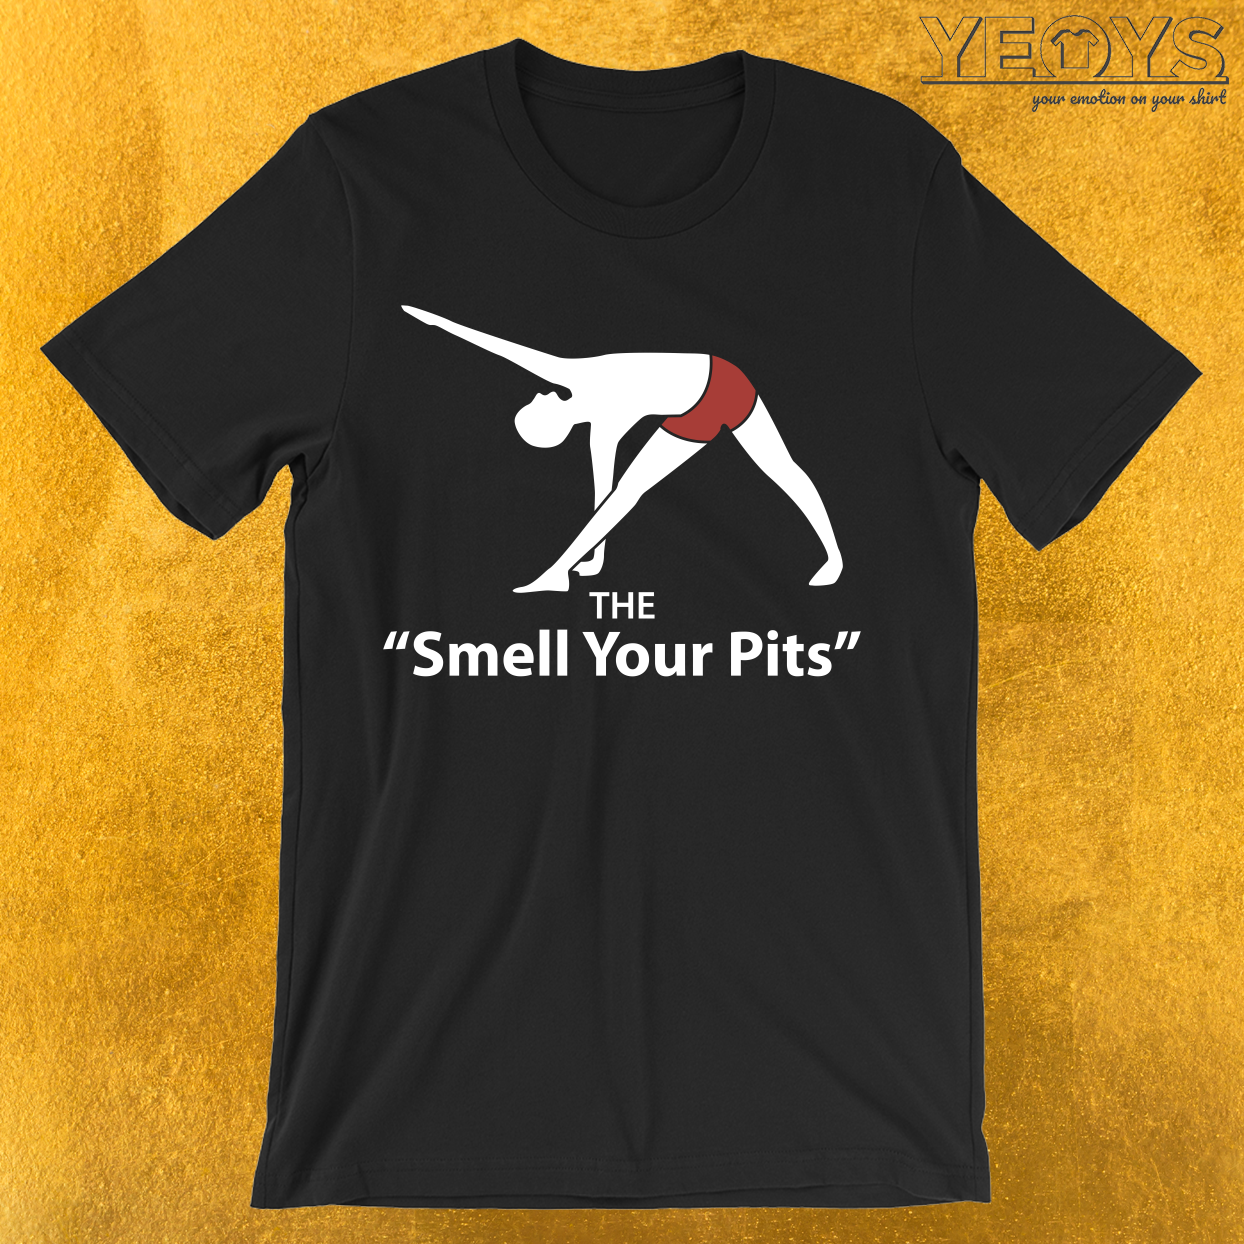 The 'Smell Your Pits' Yoga Poses T-Shirt